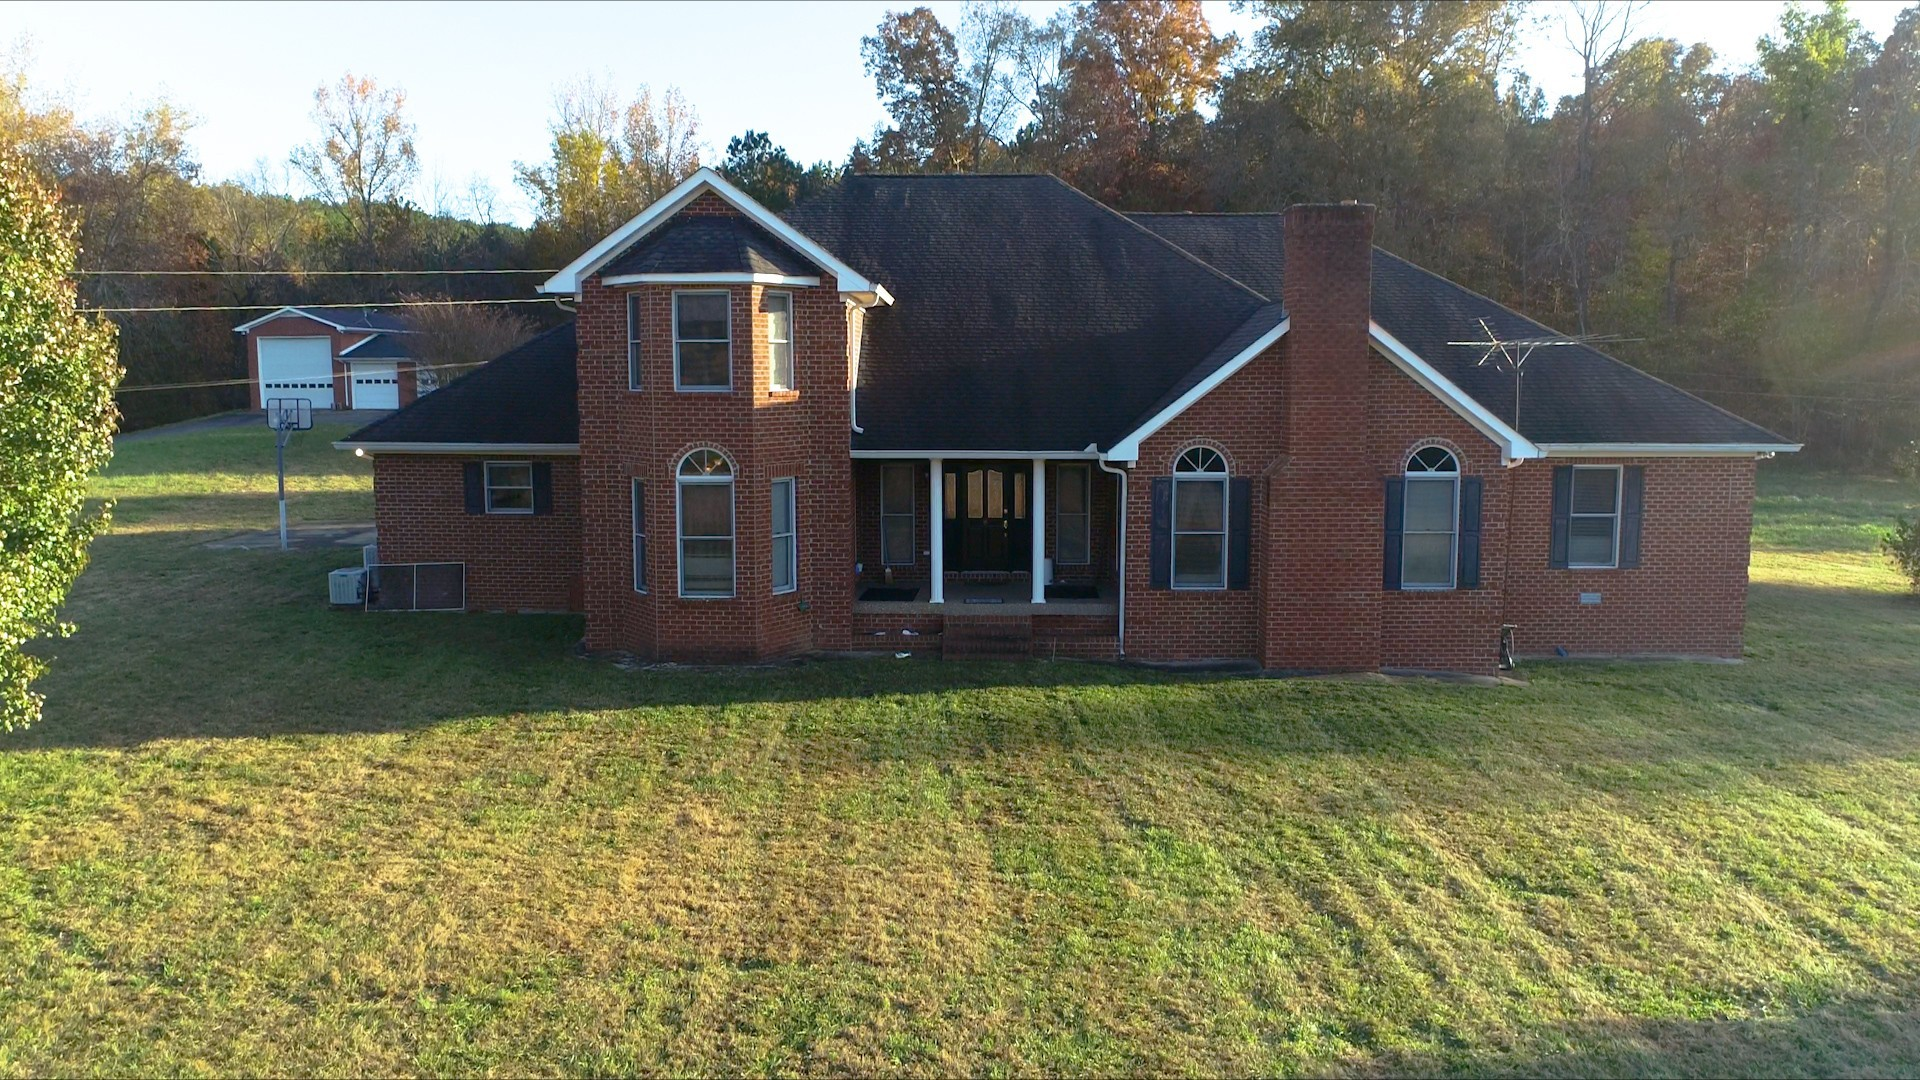 477 Duncan Rd Property Photo - Centerville, TN real estate listing